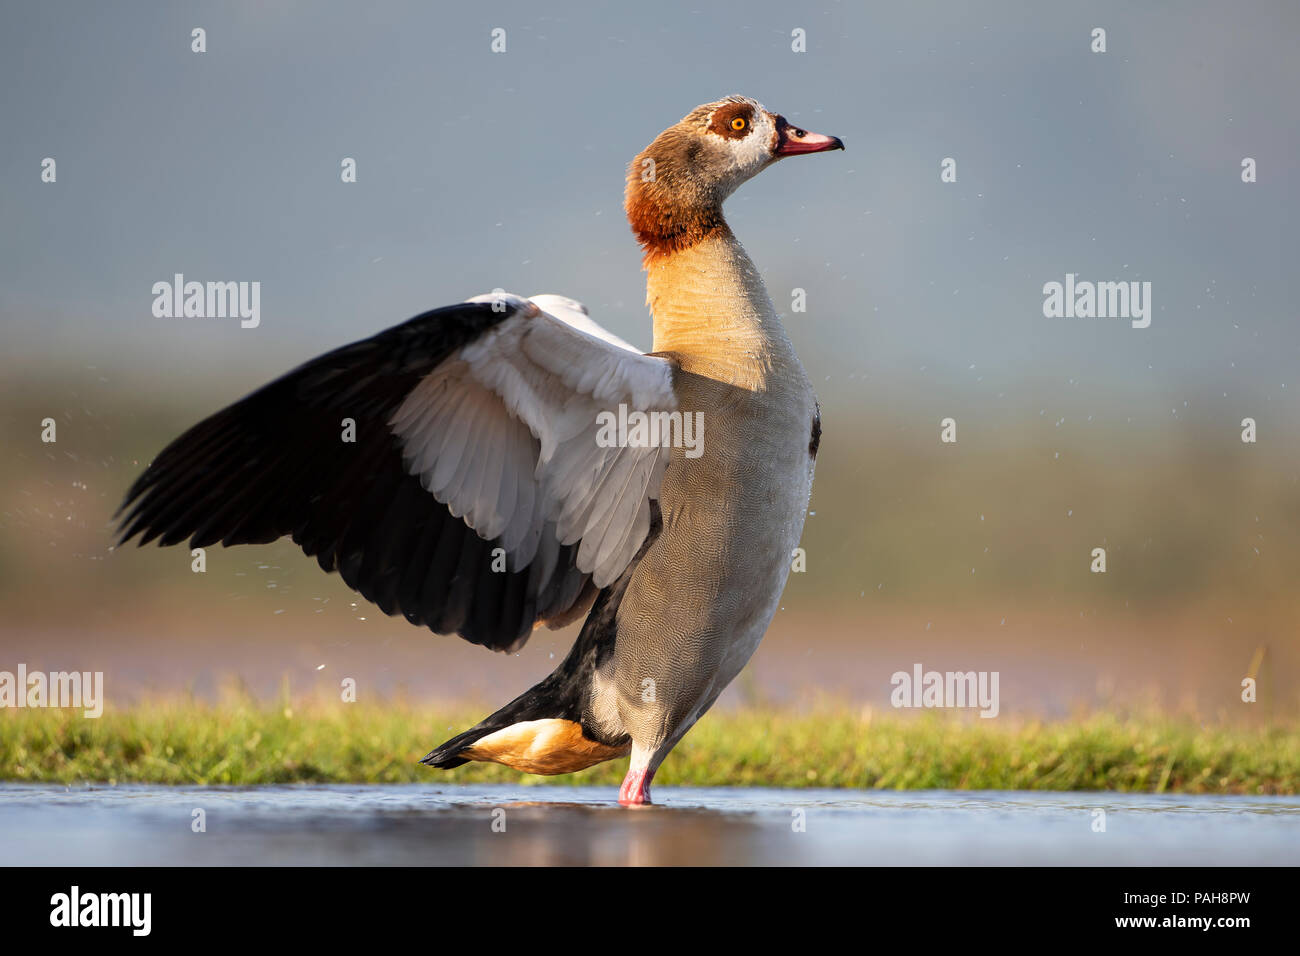 Egyptian Goose Alopochen aegyptiaca cloose up in profile flapping its wings after bathing in a shallow lagoon - Stock Image